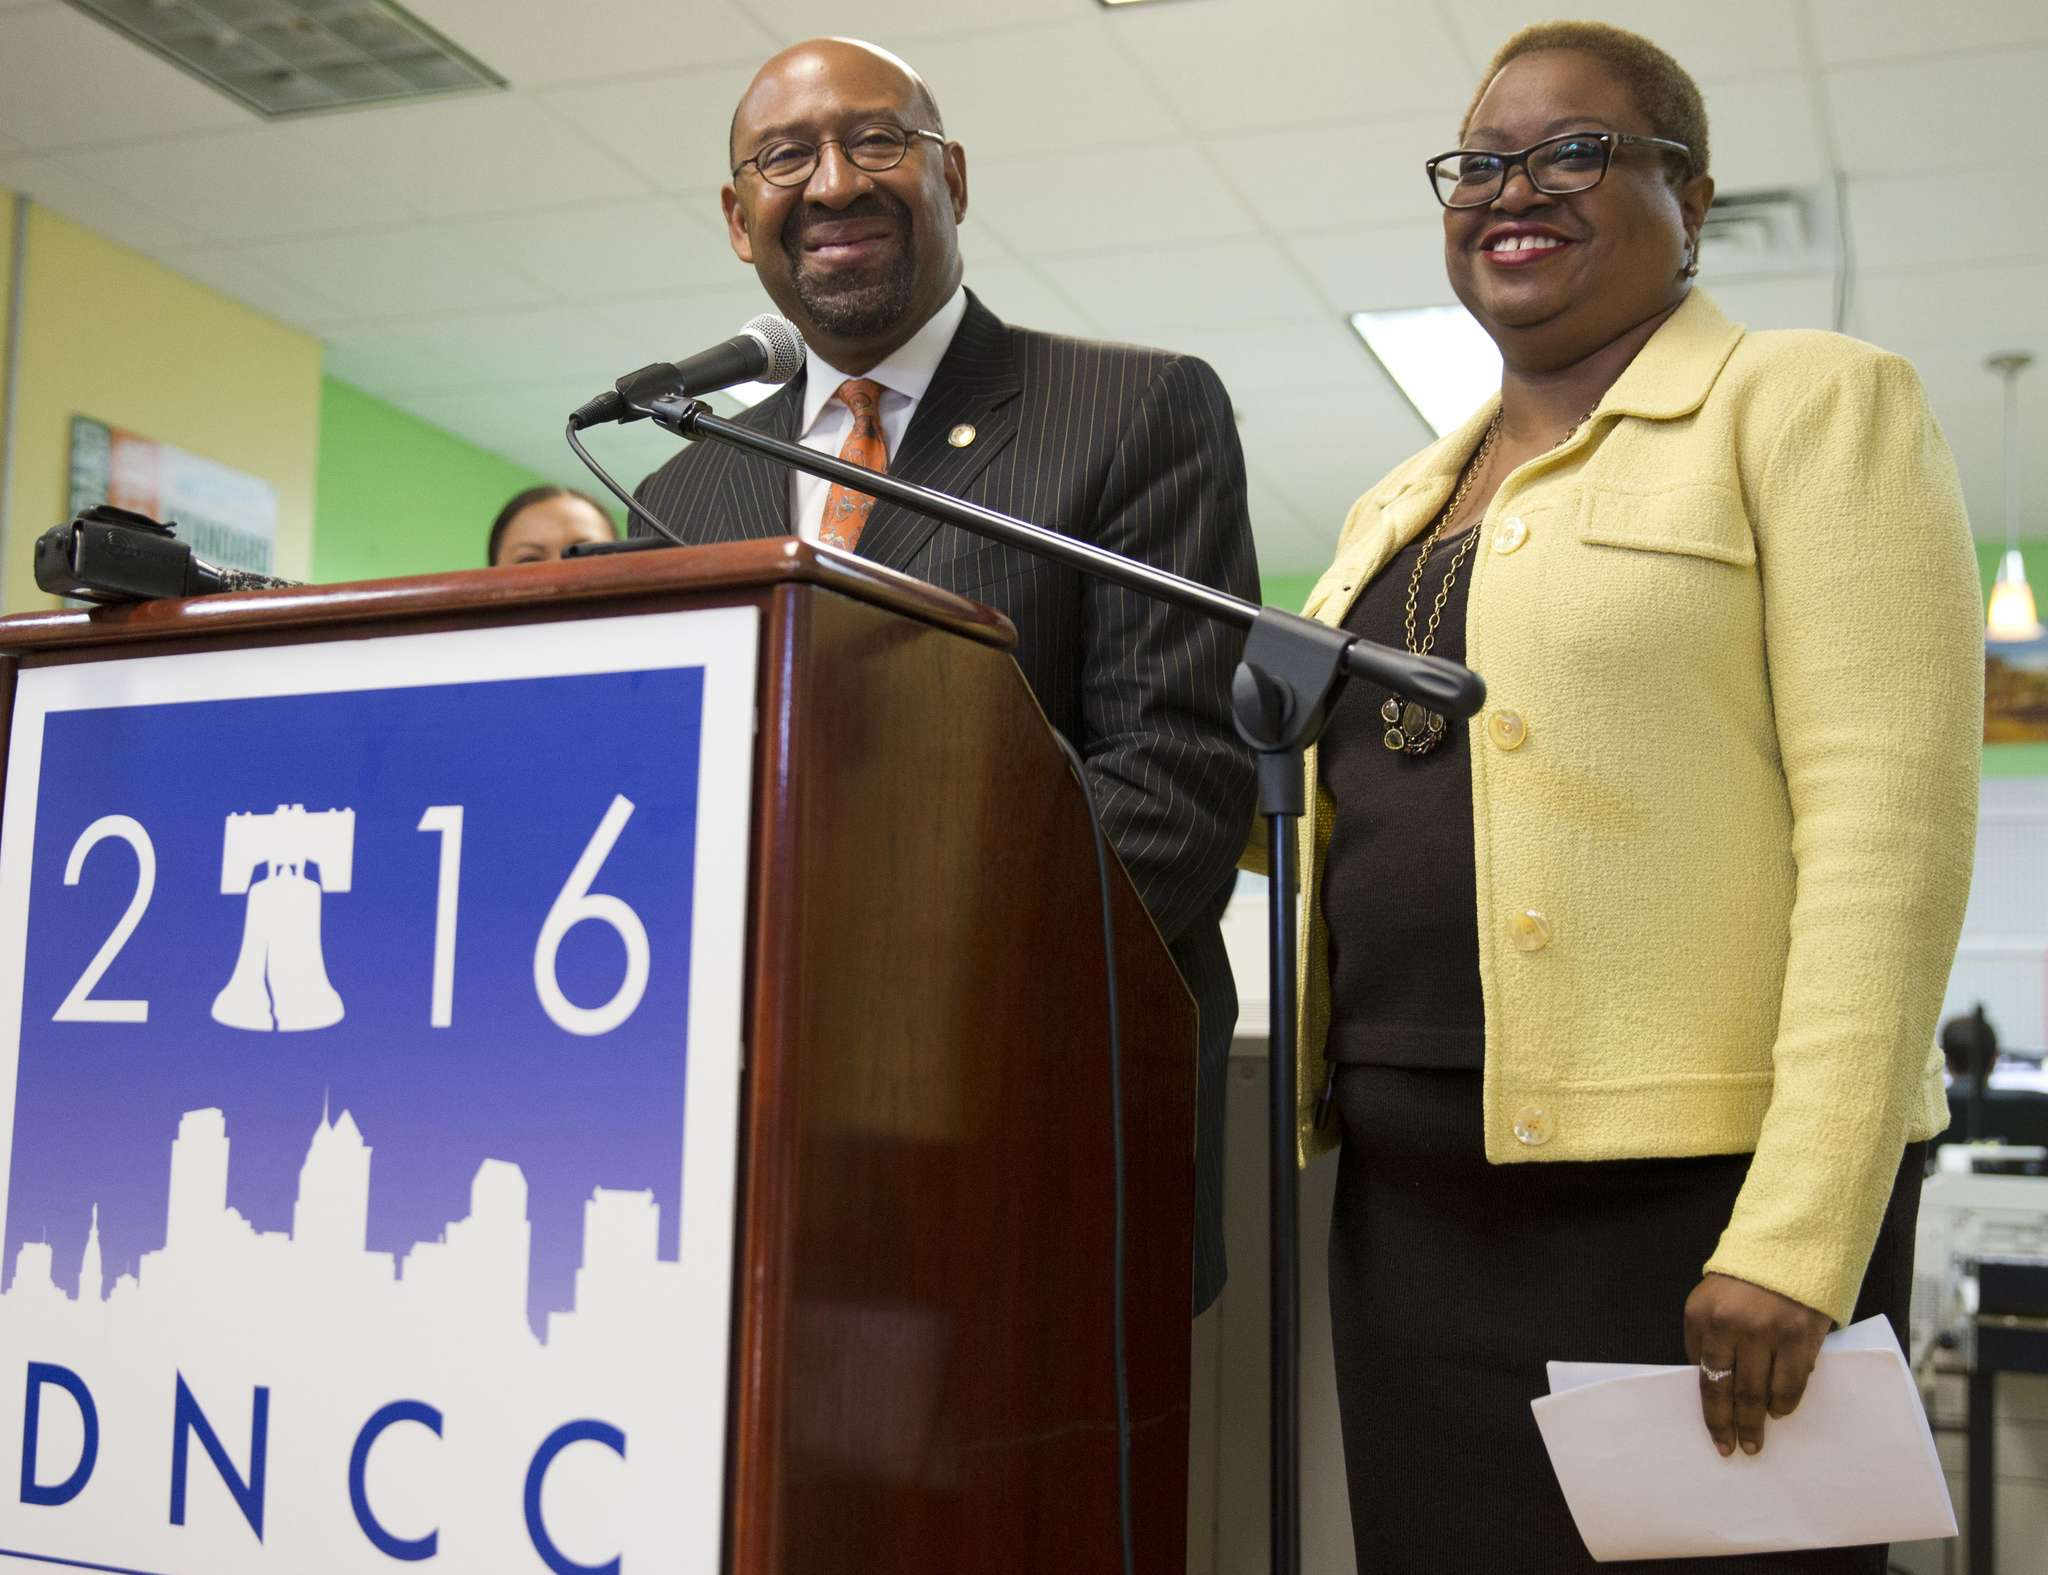 MATT ROURKE / ASSOCIATED PRESS Mayor Nutter holds a news conference with Leah Daughtry, CEO of the Democratic National Convention Committee.